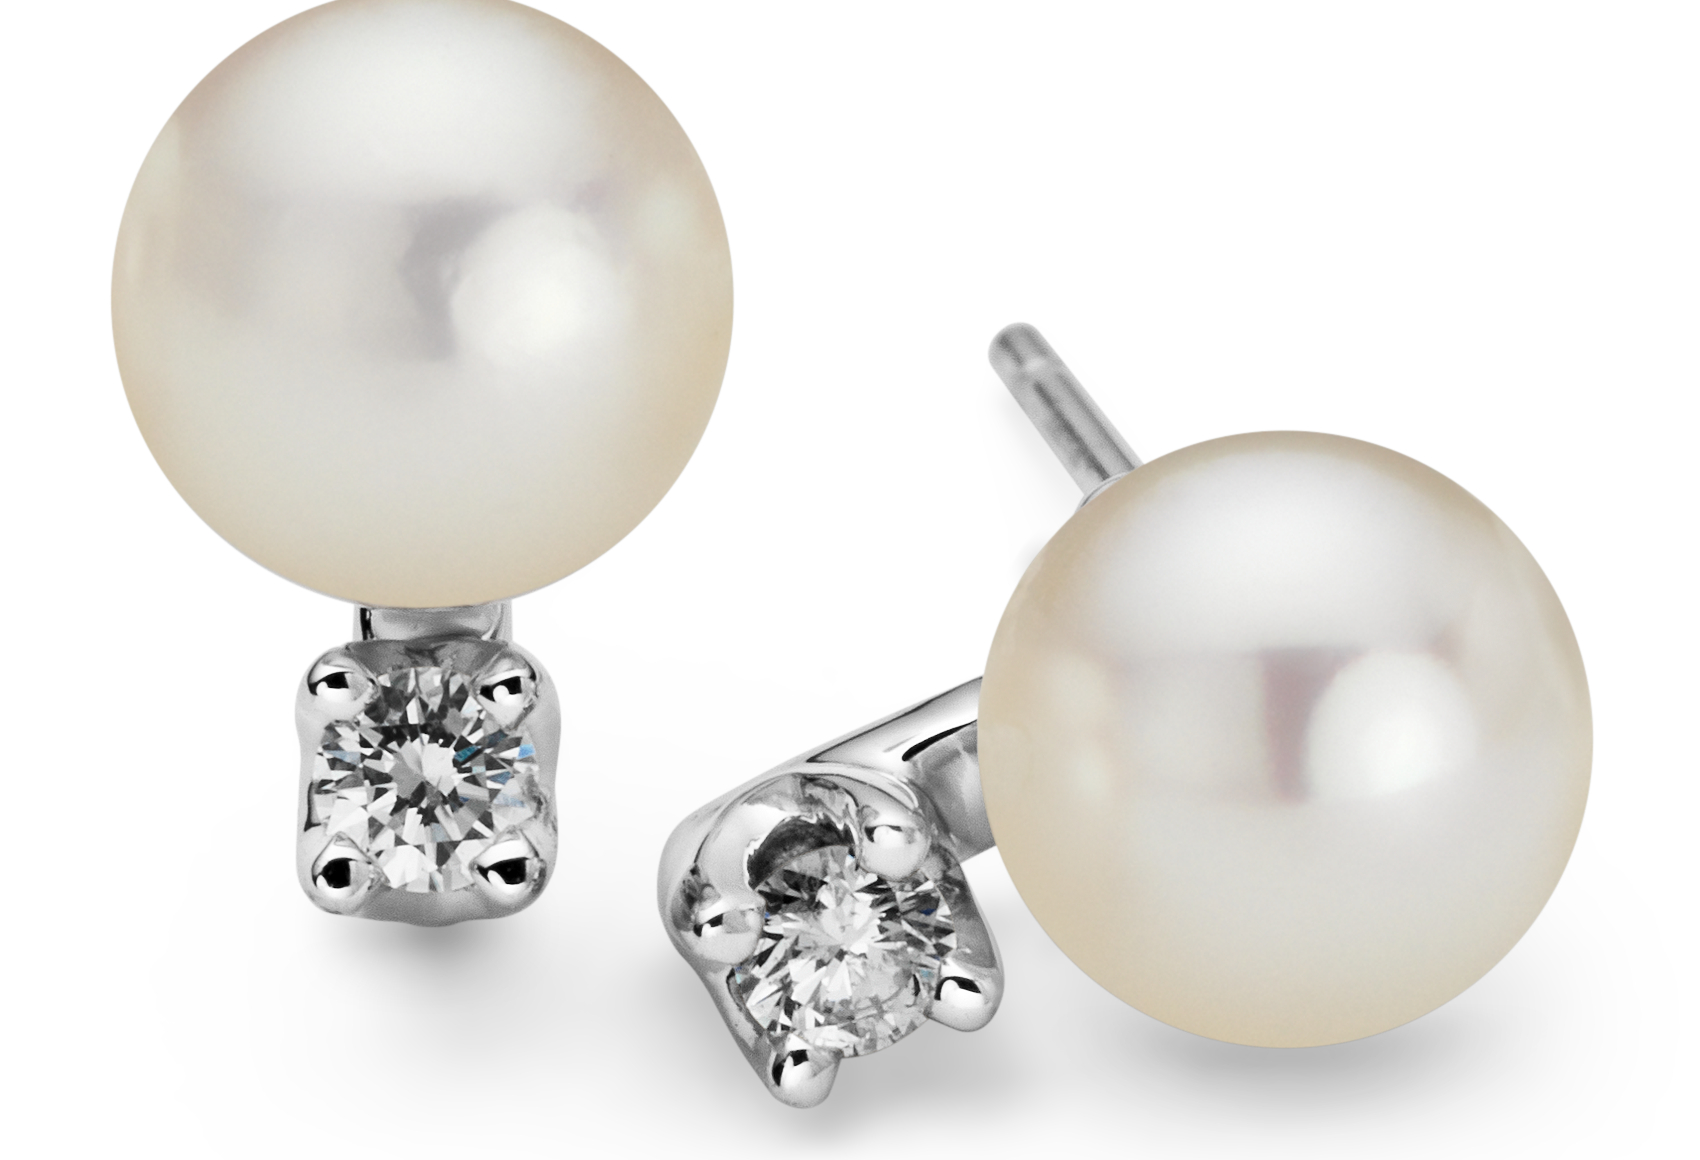 18k White Gold Akoya Cultured Pearl and Diamond Earrings (6.0 - 6.5 mm)